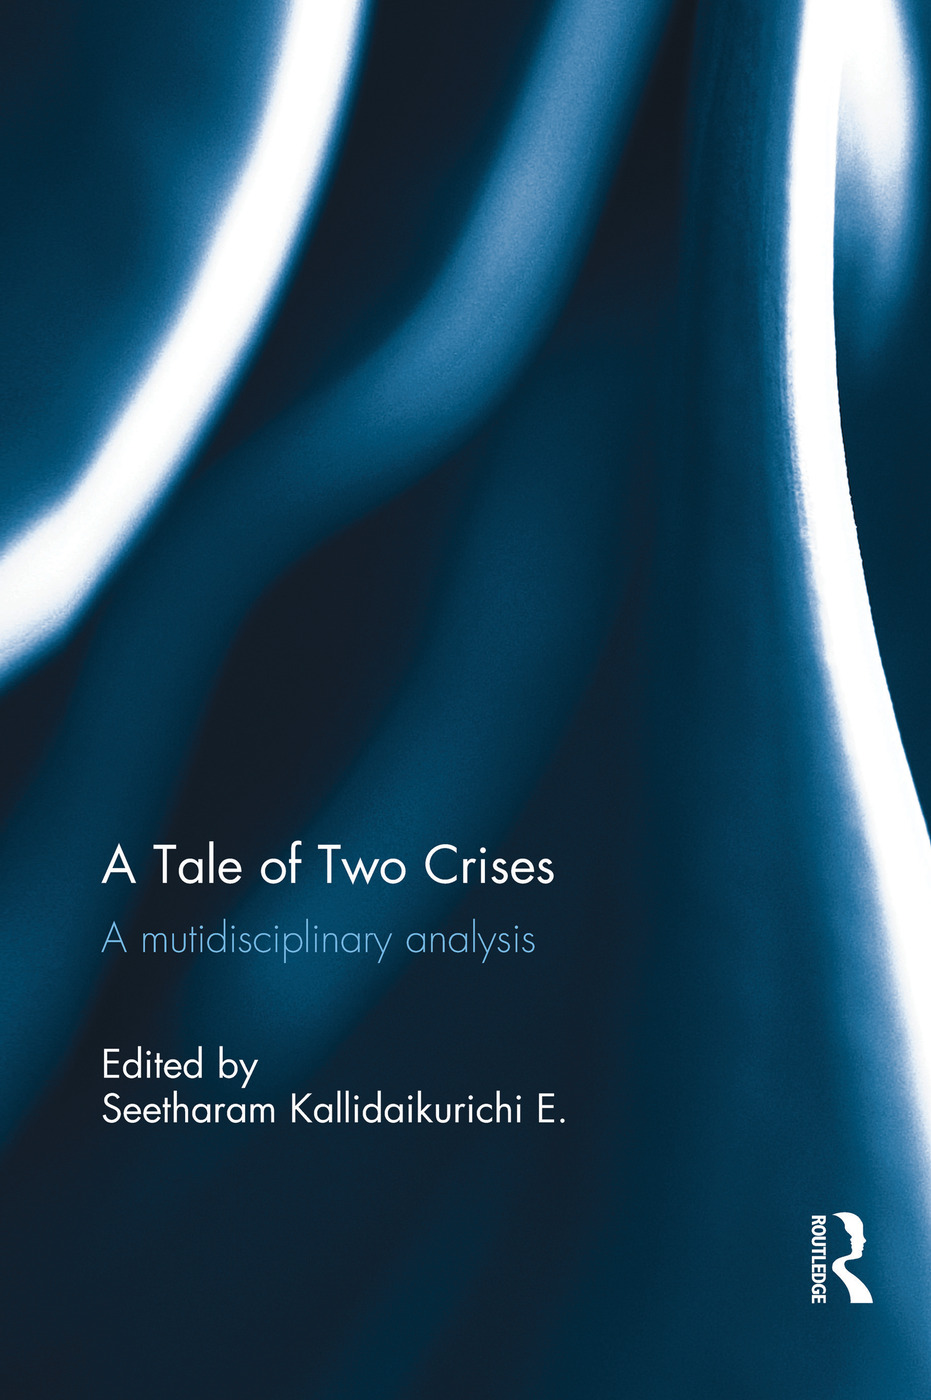 A Tale of Two Crises: A Multidisciplinary Analysis book cover